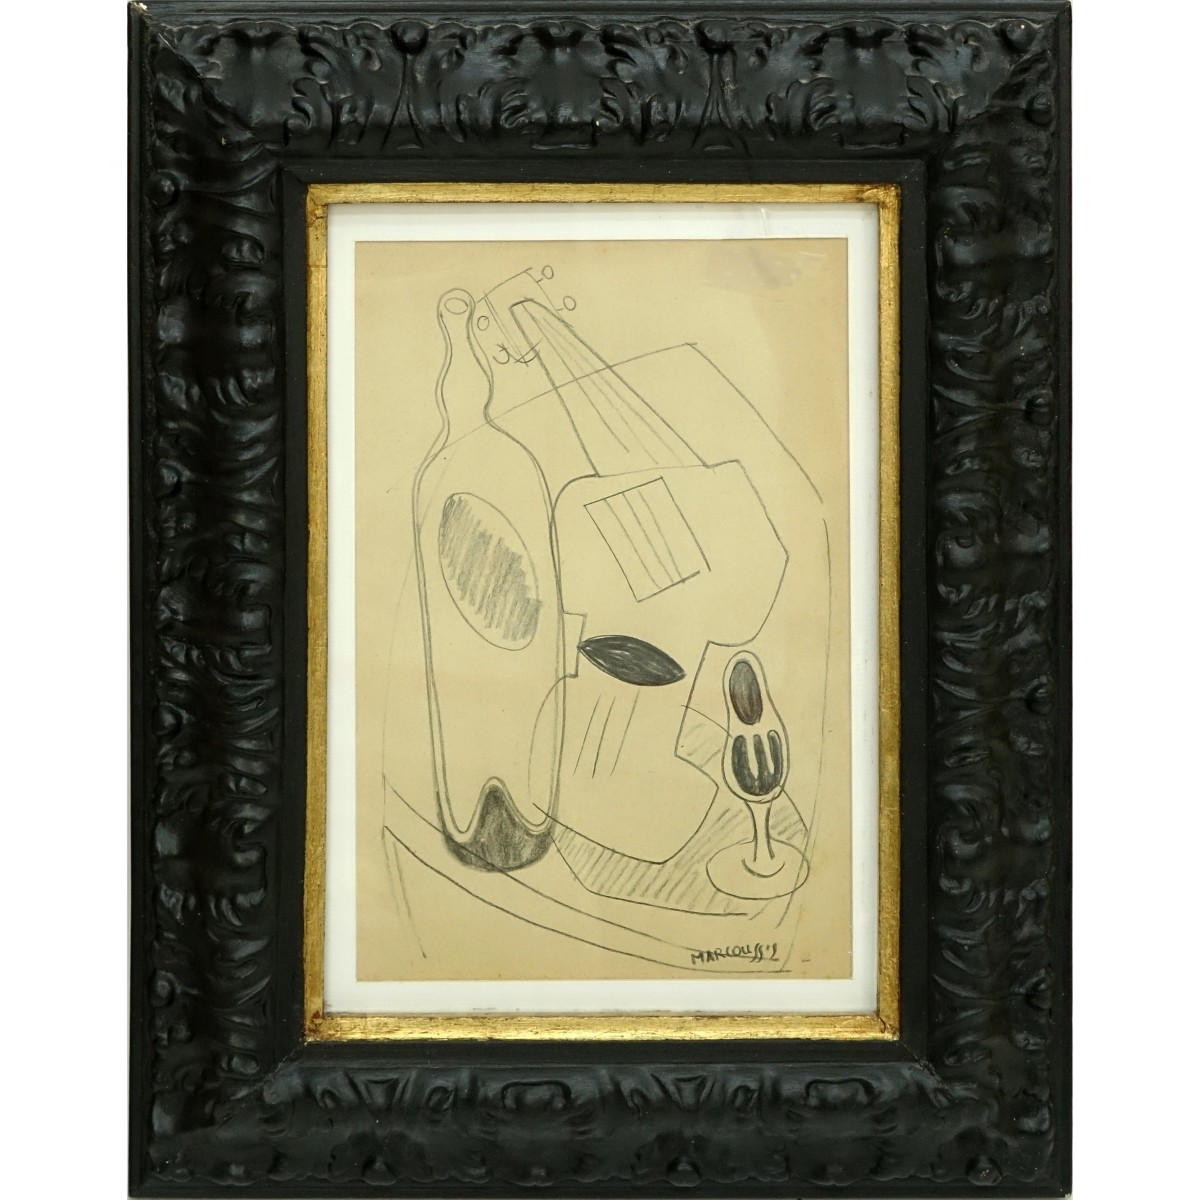 Attributed to: Louis Marcoussis Pencil Drawing